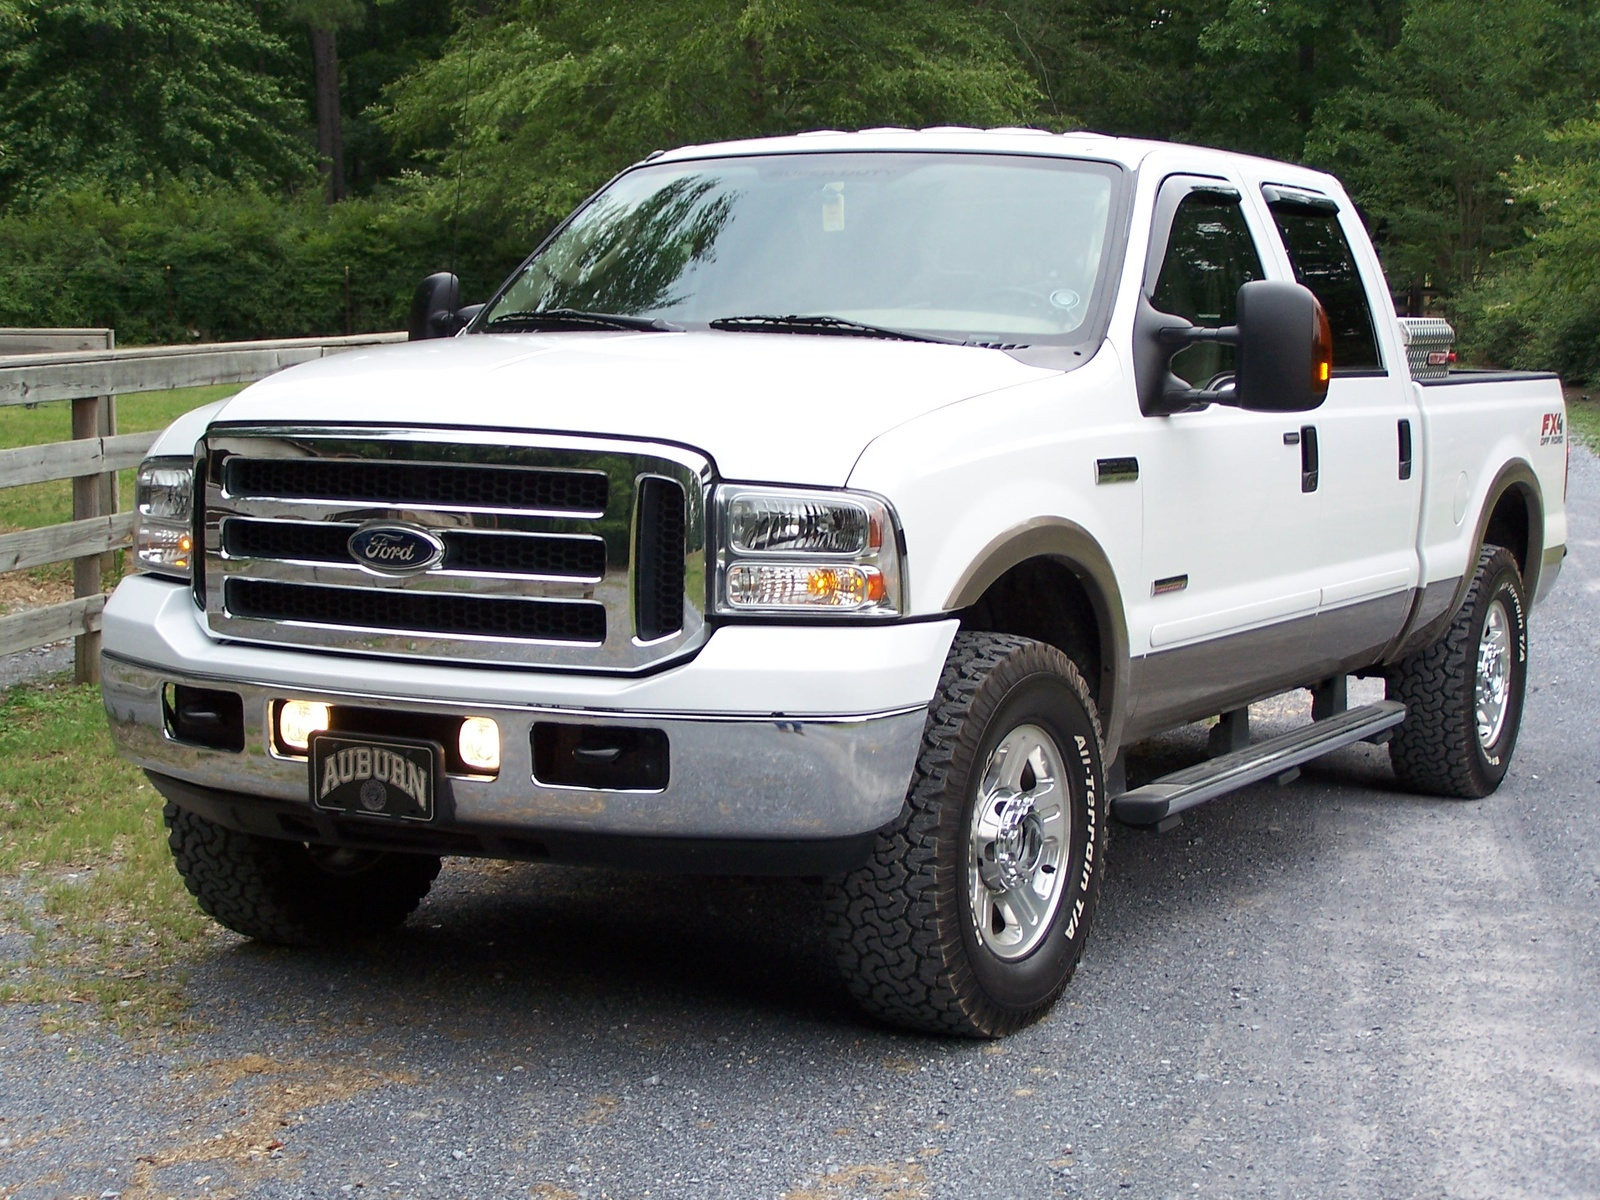 2006 Ford F-250 Super Duty Lariat 4dr SuperCab 4WD SB picture